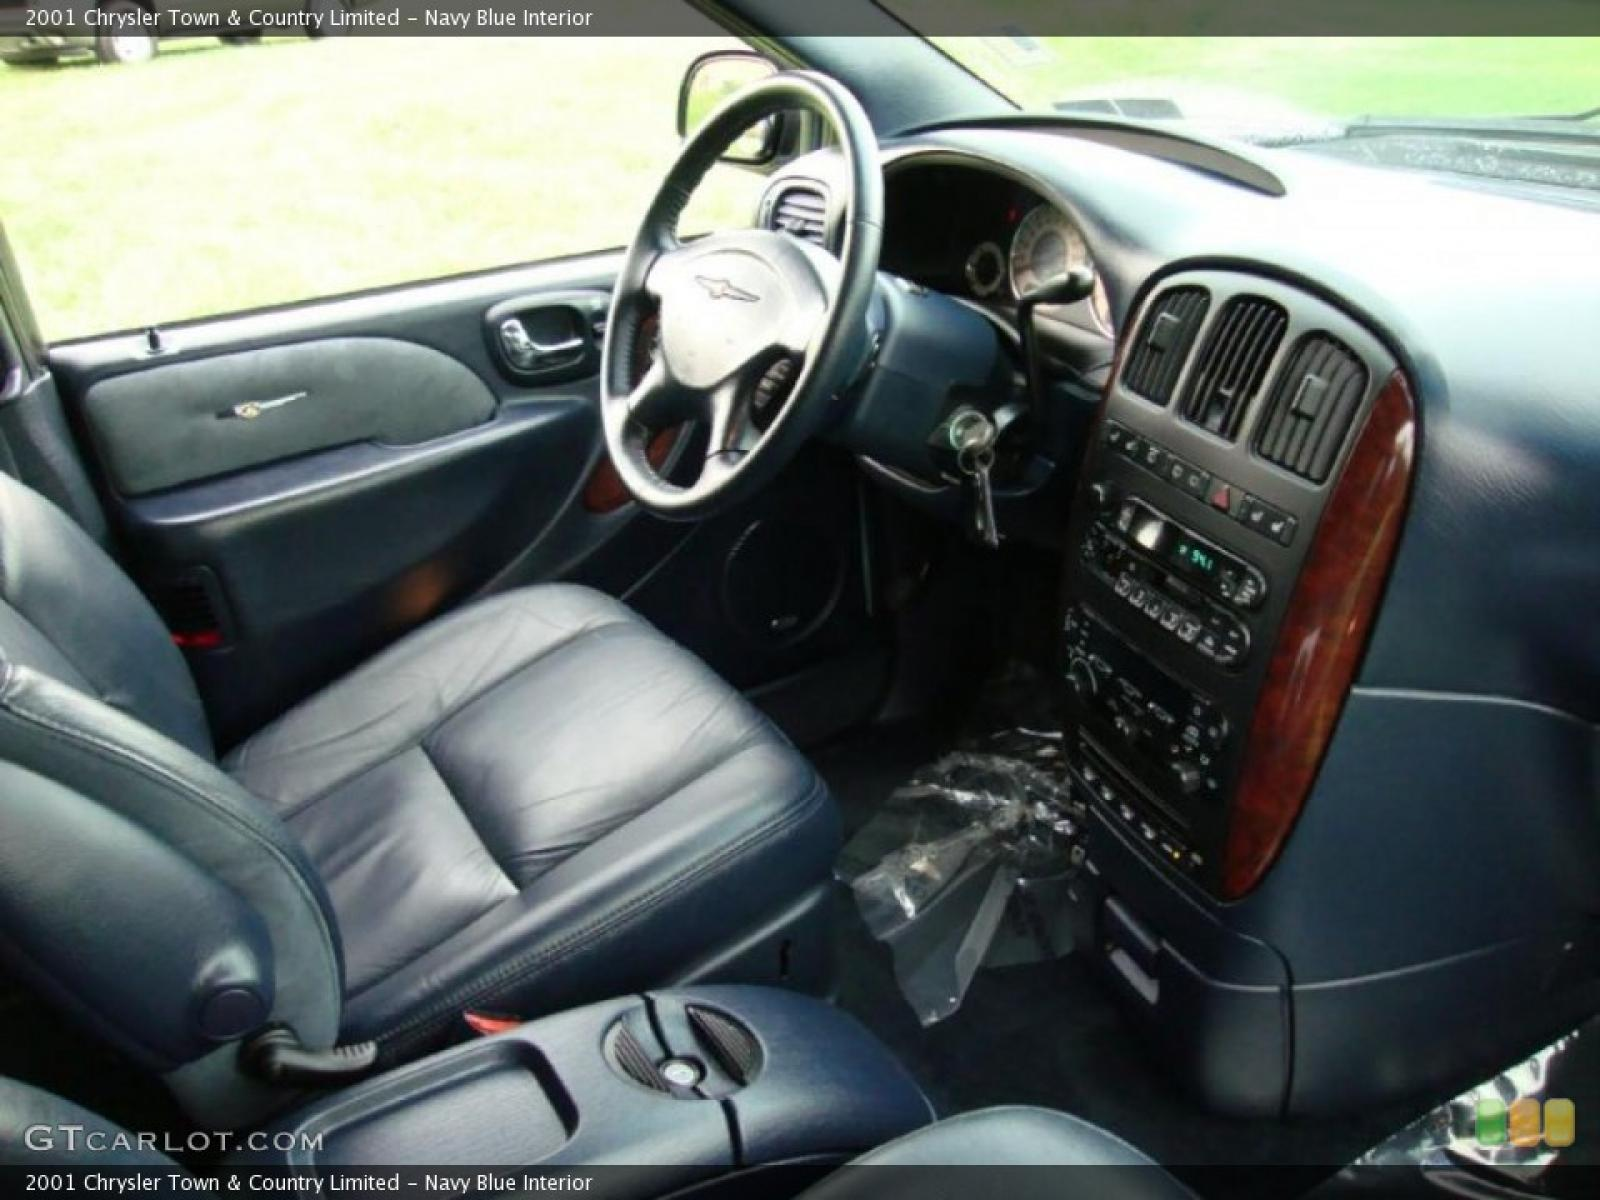 2001 chrysler town and country information and photos for 1999 chrysler town and country window problems